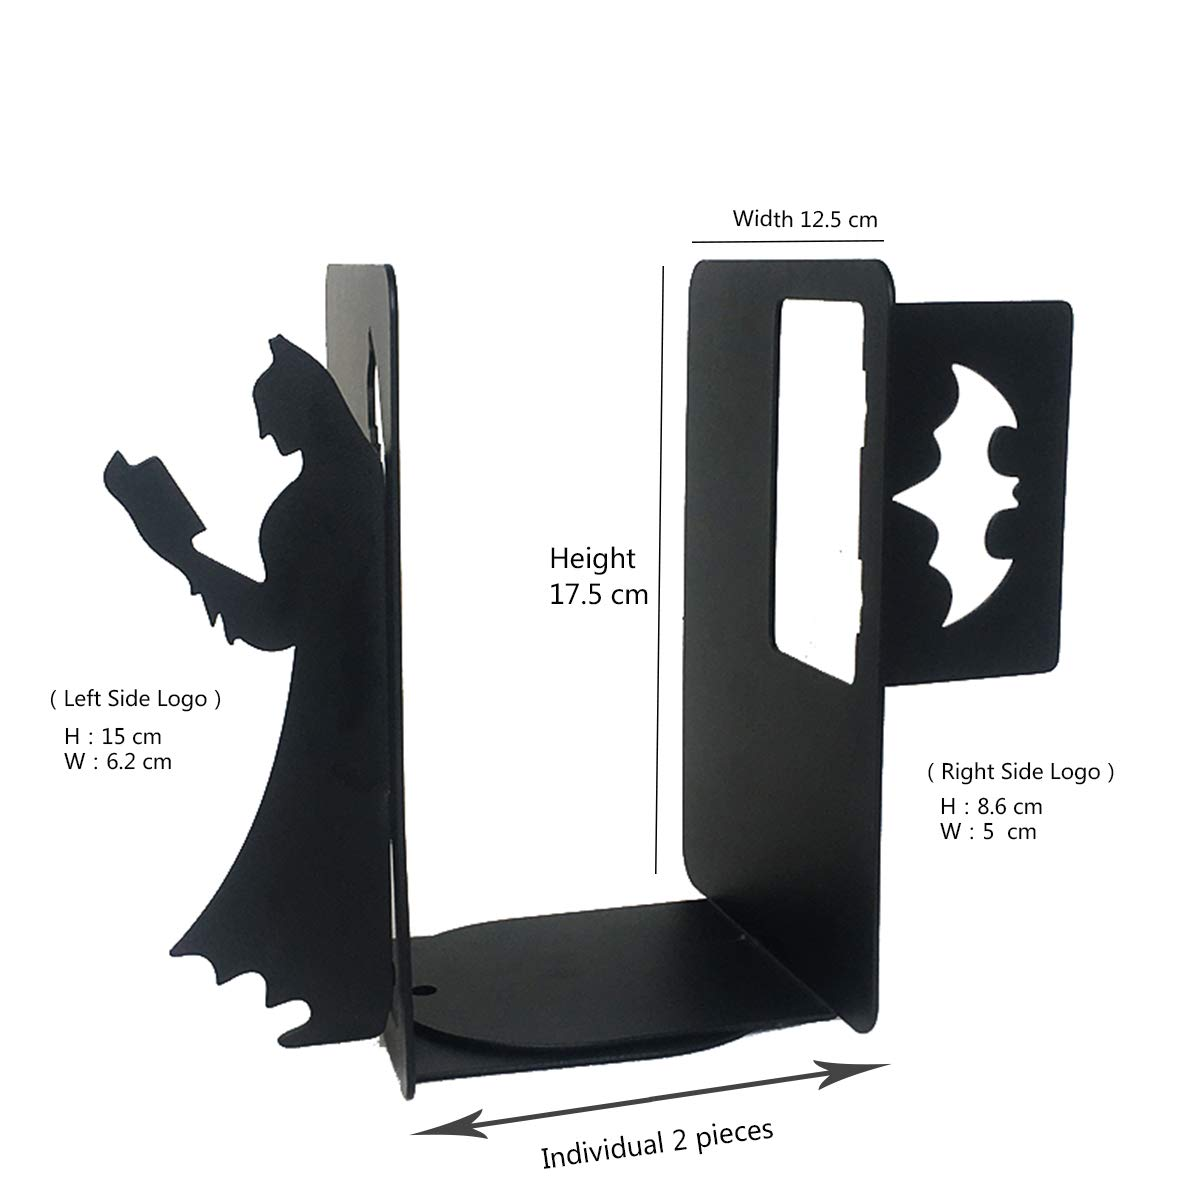 PandS Black Batman Bookends | Unique Bookends | Metal Decorative Book Ends | Gifts for Book Lovers | Gift for the Super Hero in Your Life | Heavy Duty and Creative Bookends | Bookends for Heavy Books